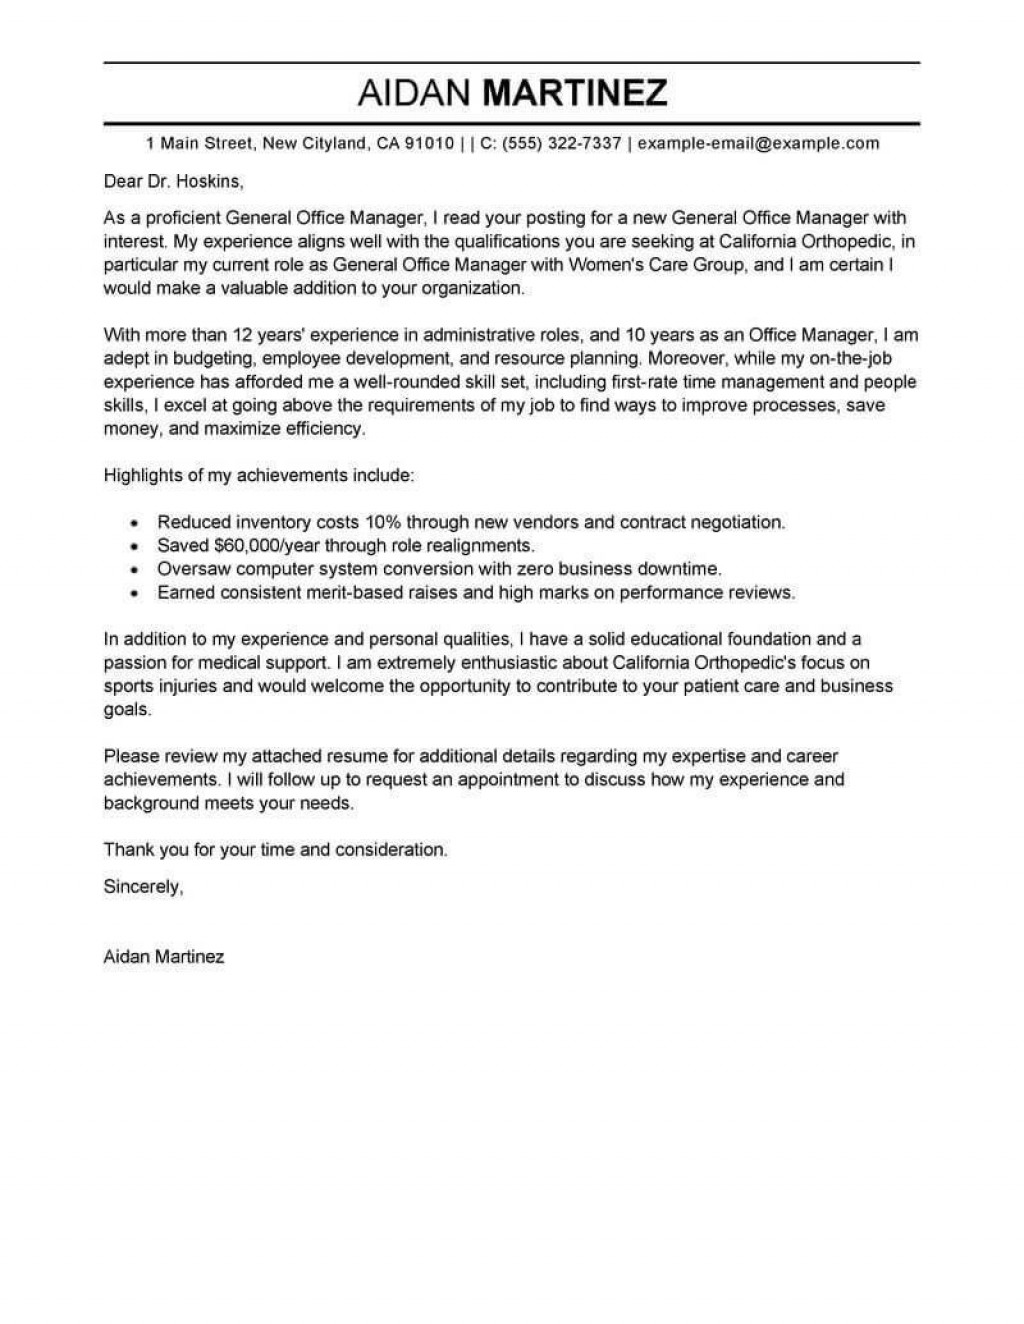 001 Excellent General Manager Cover Letter Template Sample  HotelLarge